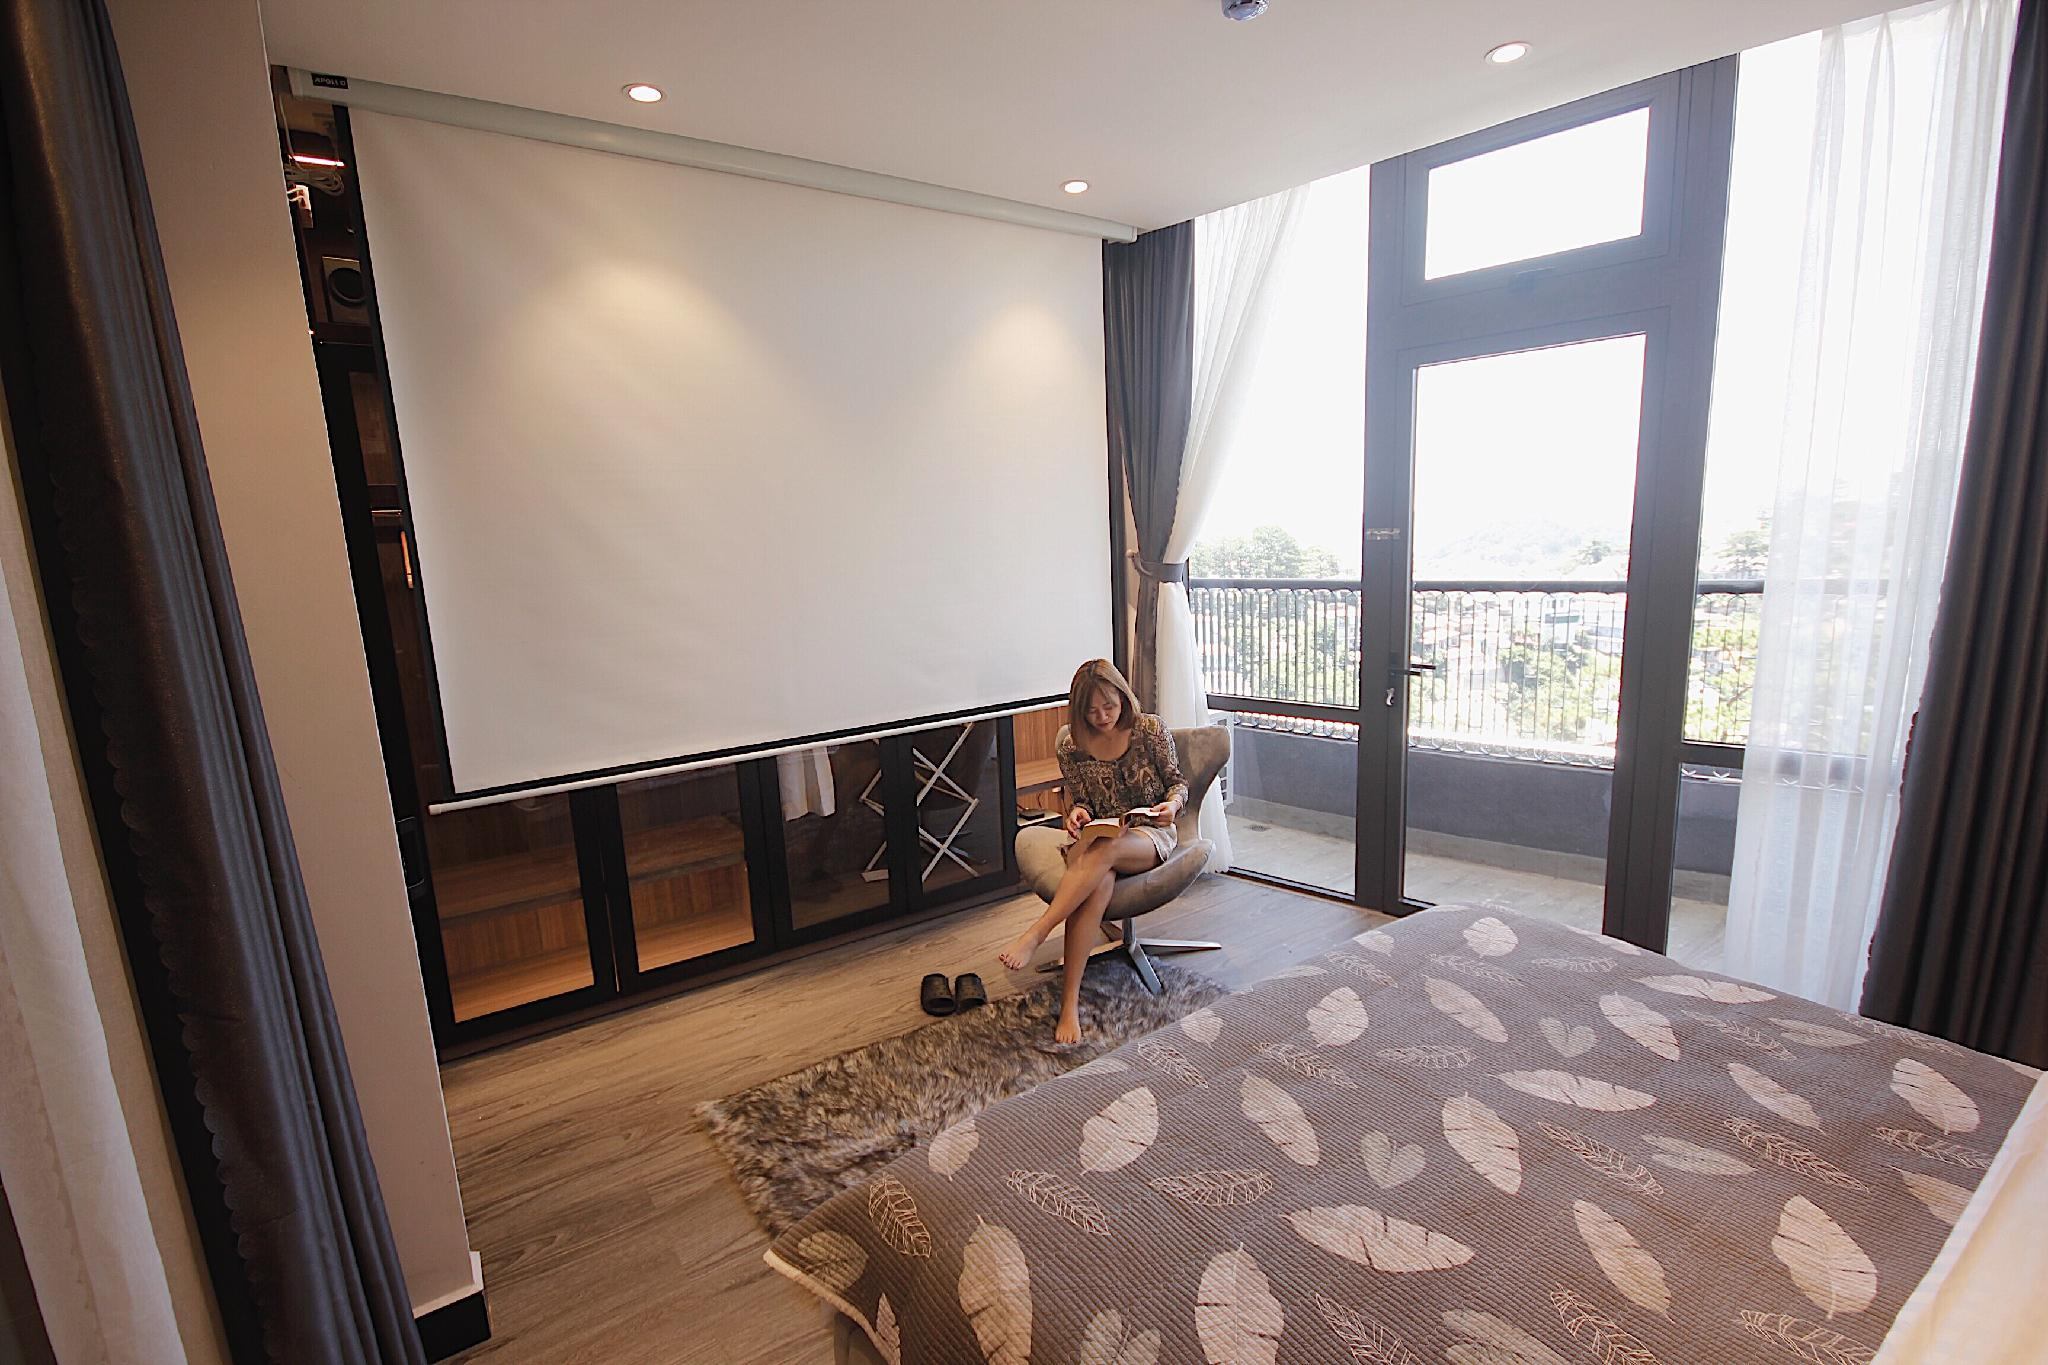 The Luxstay With Panorama View